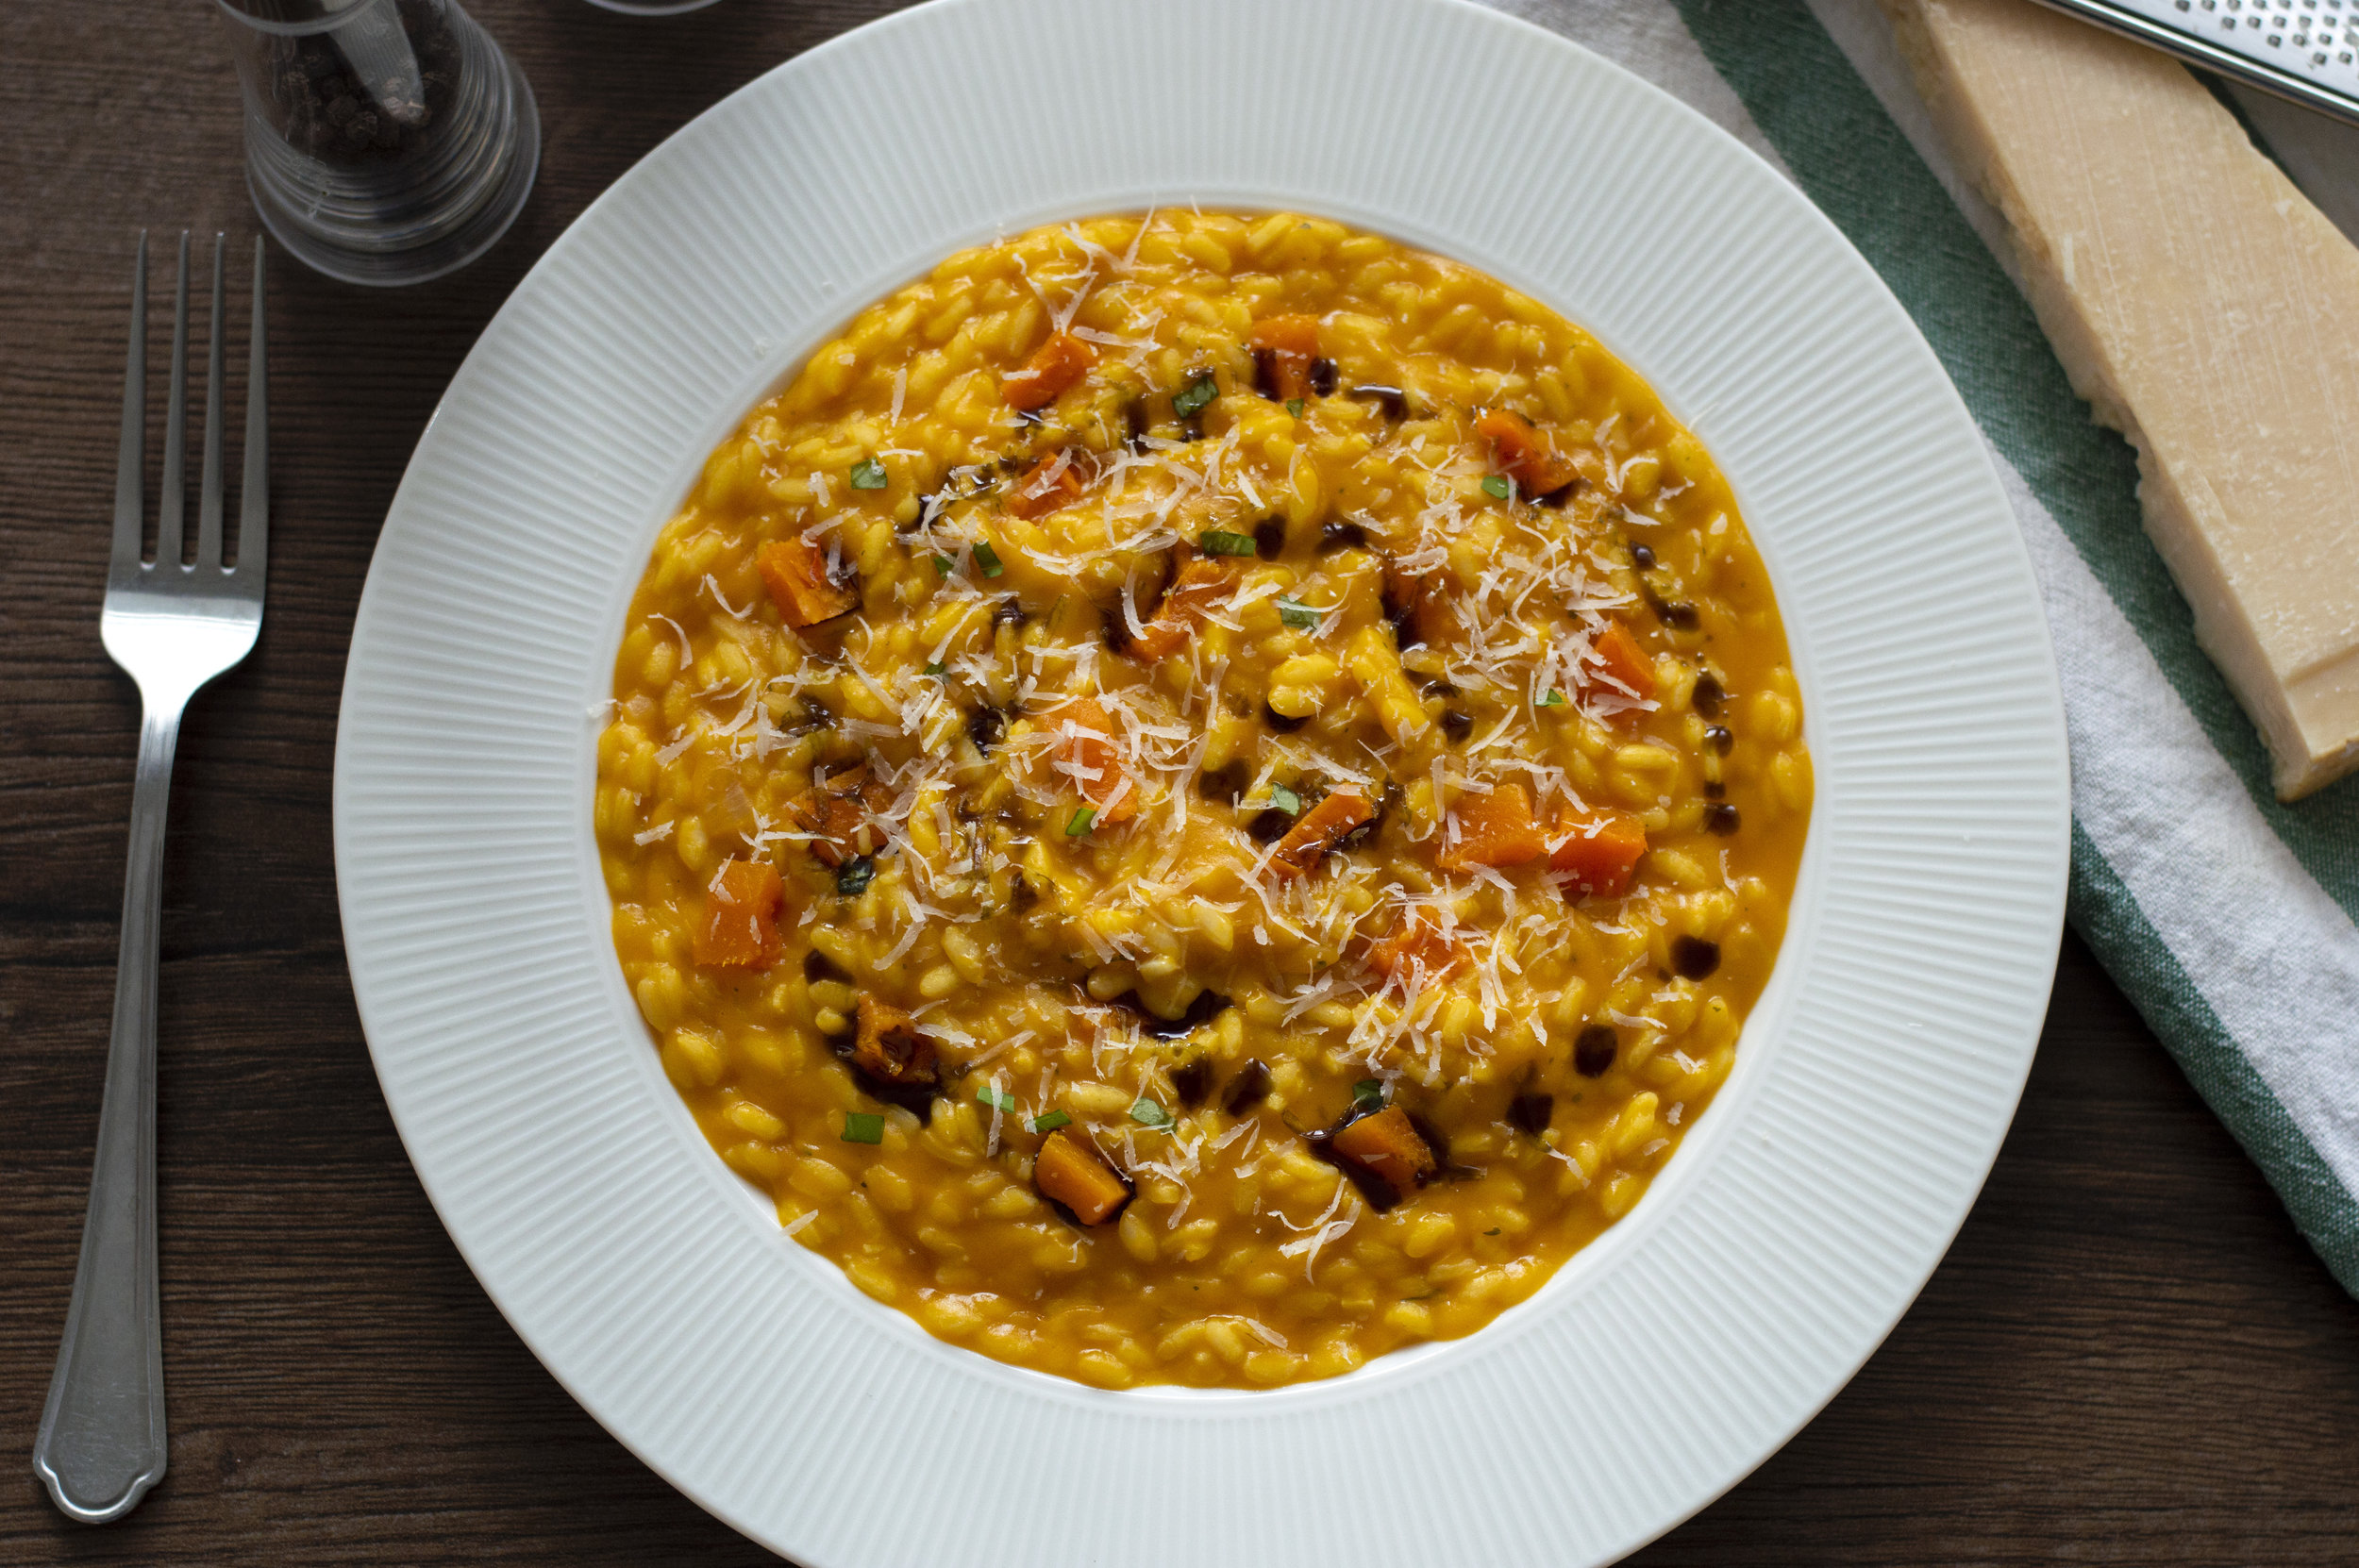 Pumpkin Risotto - This recipe will teach you how to make a chef-standard risotto. This hearty, seasonally risotto is a perfect autumn comfort food! An excellent dish for a dinner party or to make for family and friends.